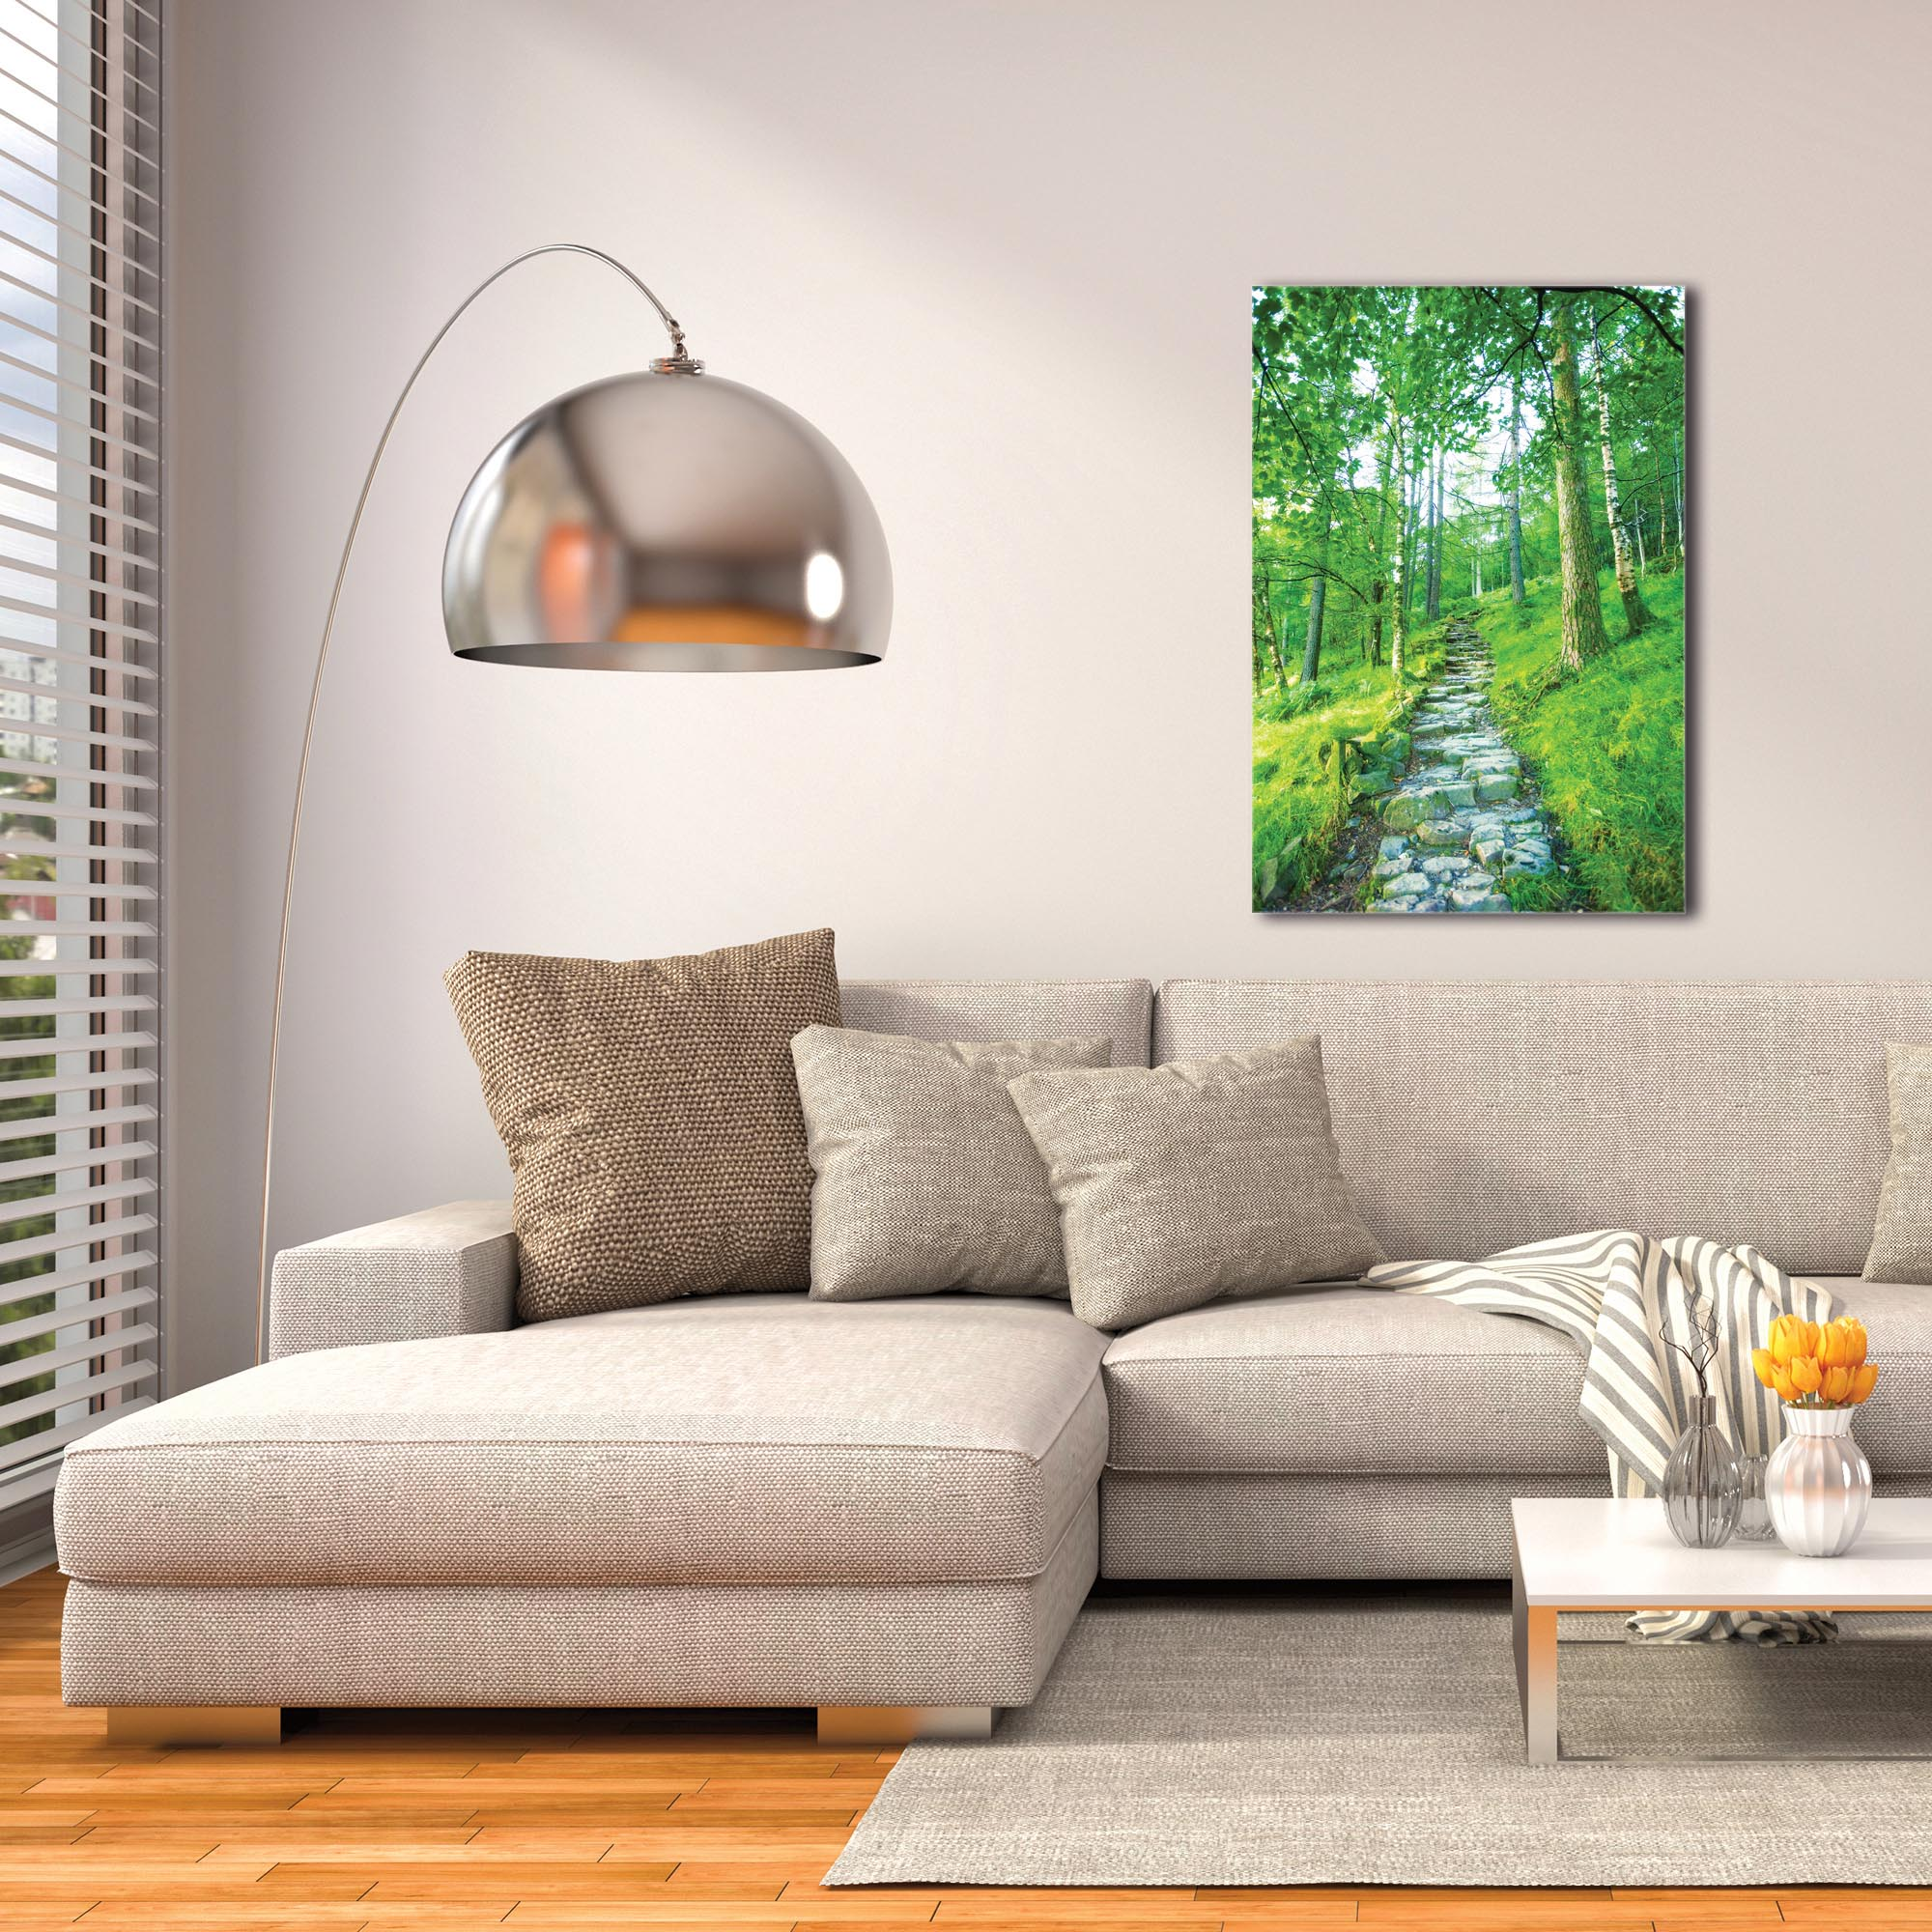 Landscape Photography 'Cobblestone Path' - Green Trees Art on Metal or Plexiglass - Image 3